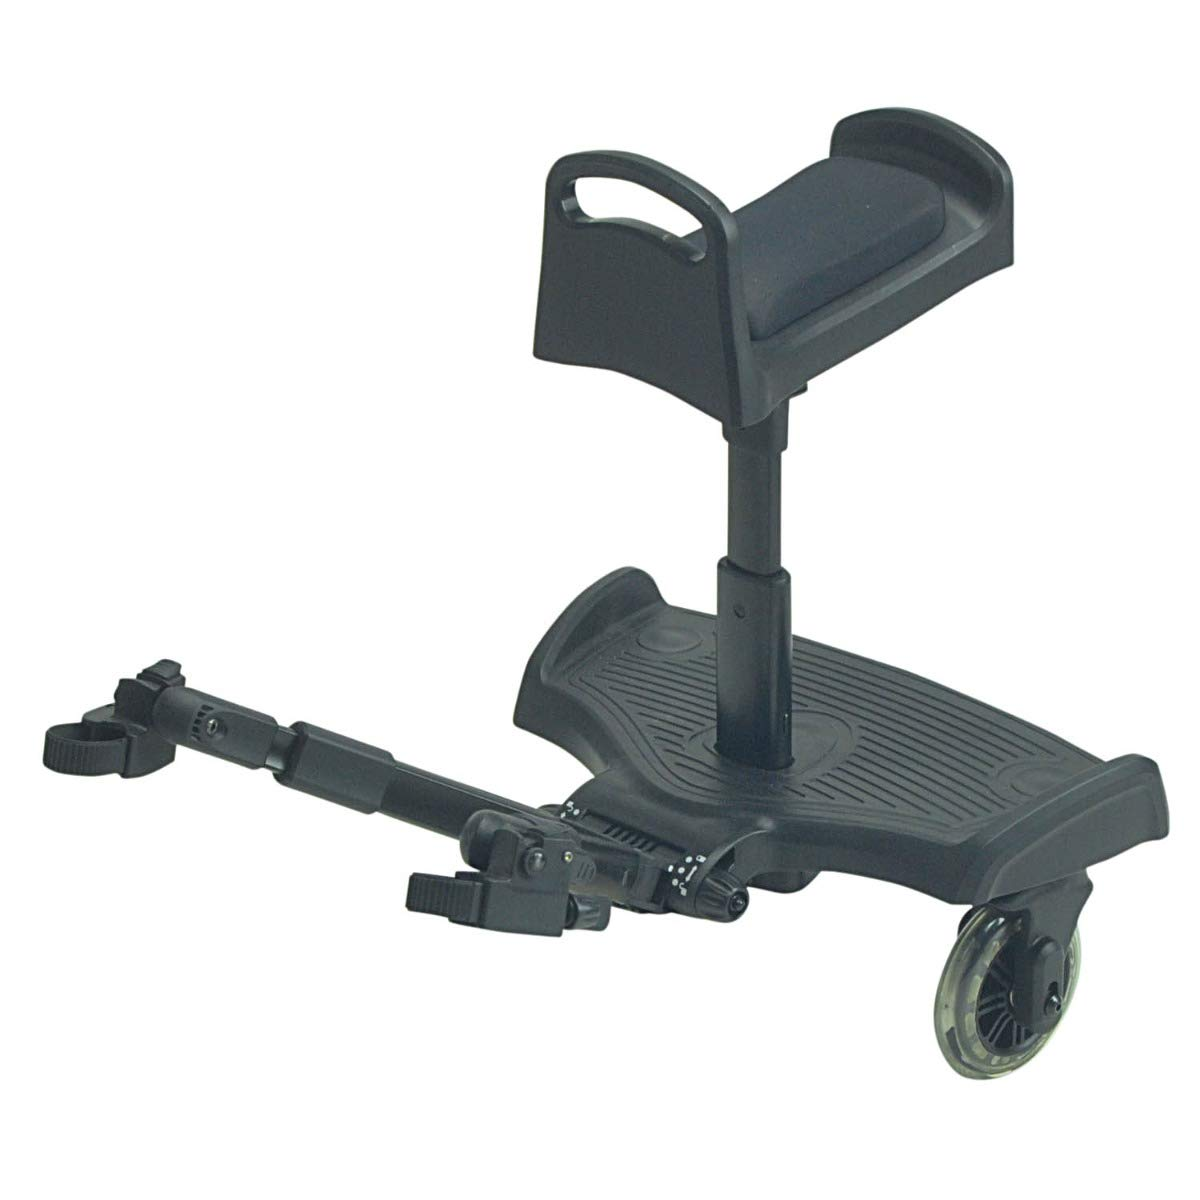 Black FYLORide On Board with Saddle Compatible with Cybex Priam